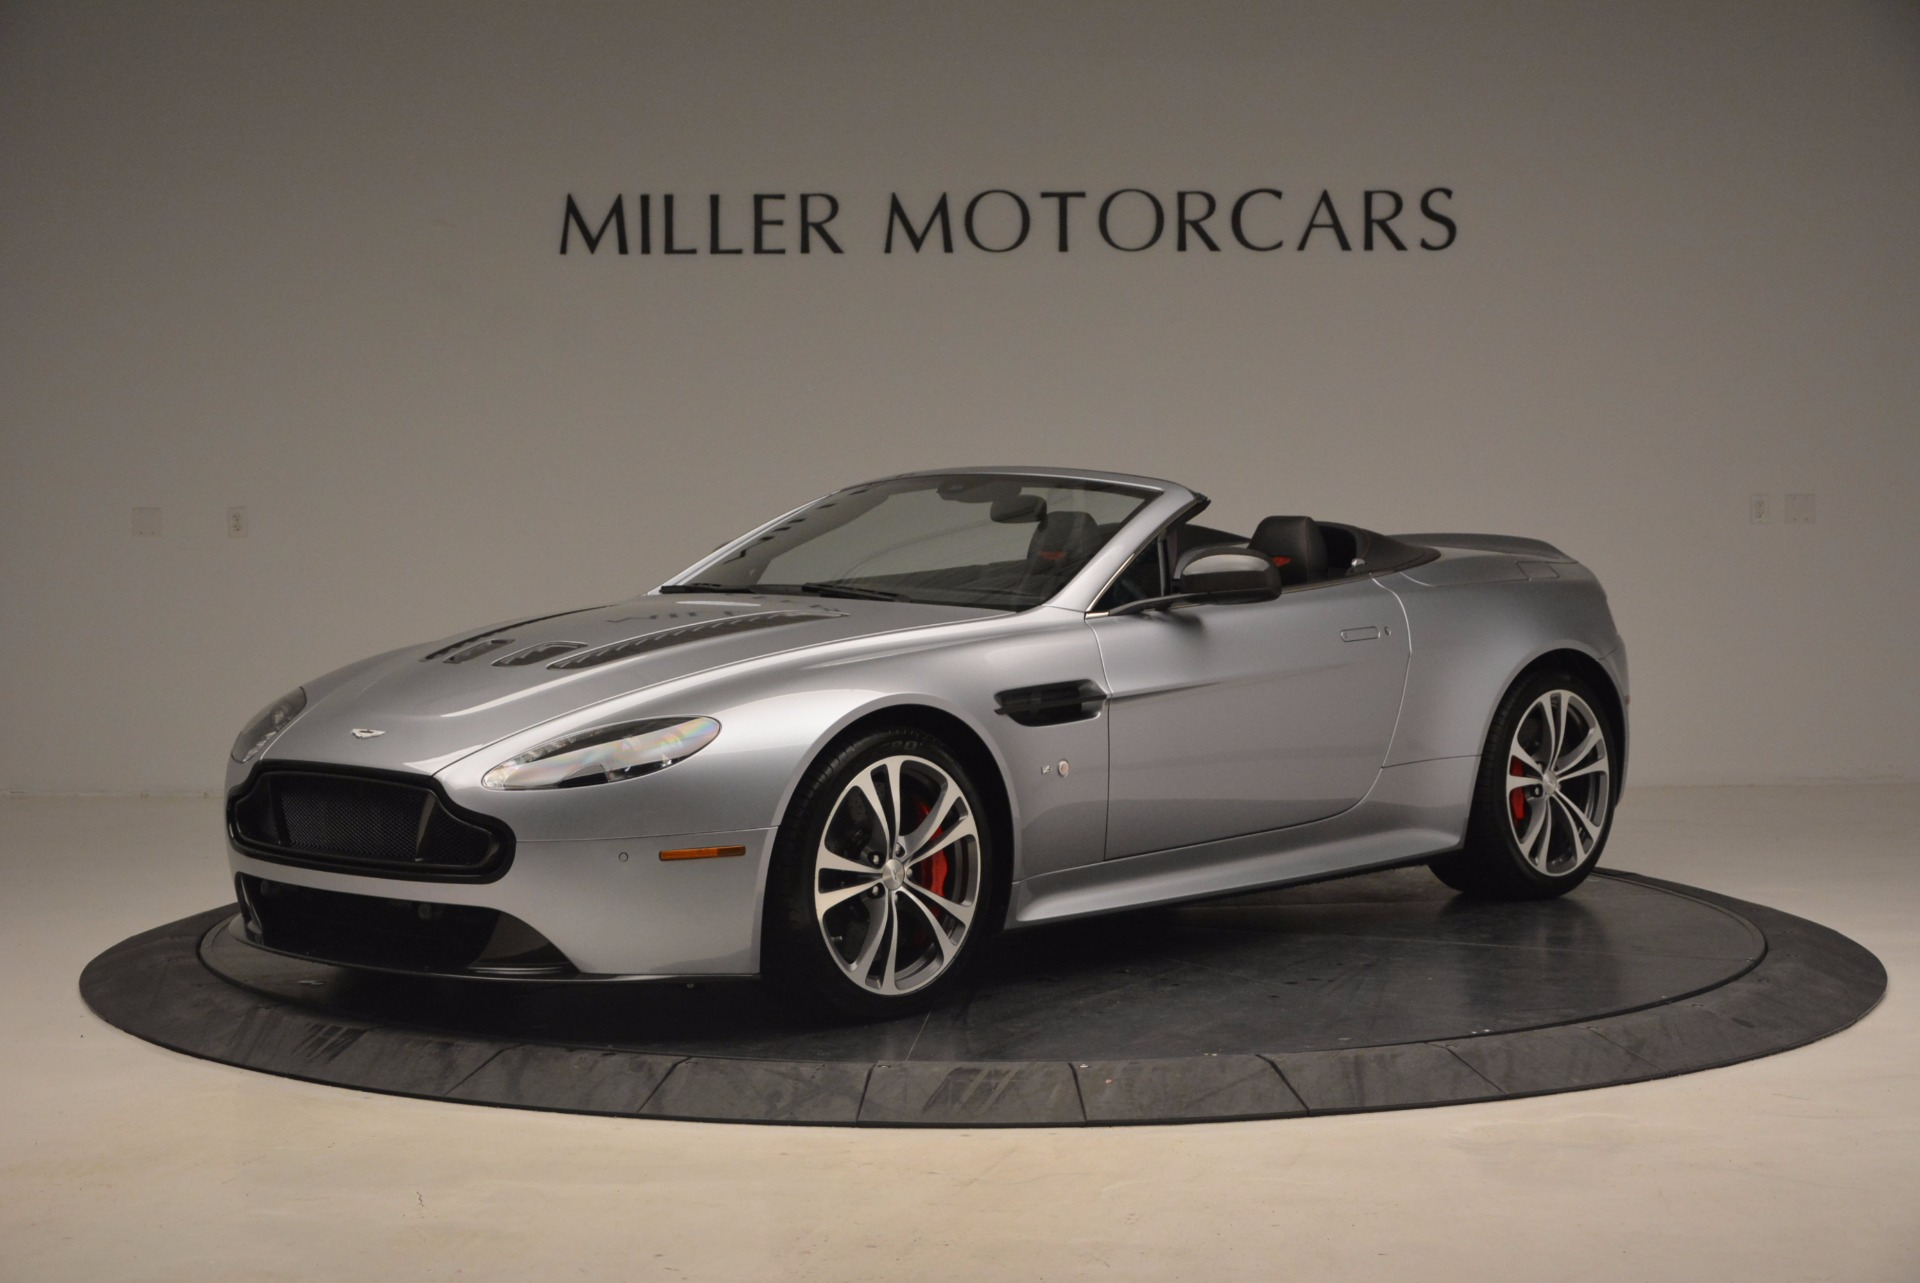 Used 2015 Aston Martin V12 Vantage S Roadster for sale Sold at Bugatti of Greenwich in Greenwich CT 06830 1